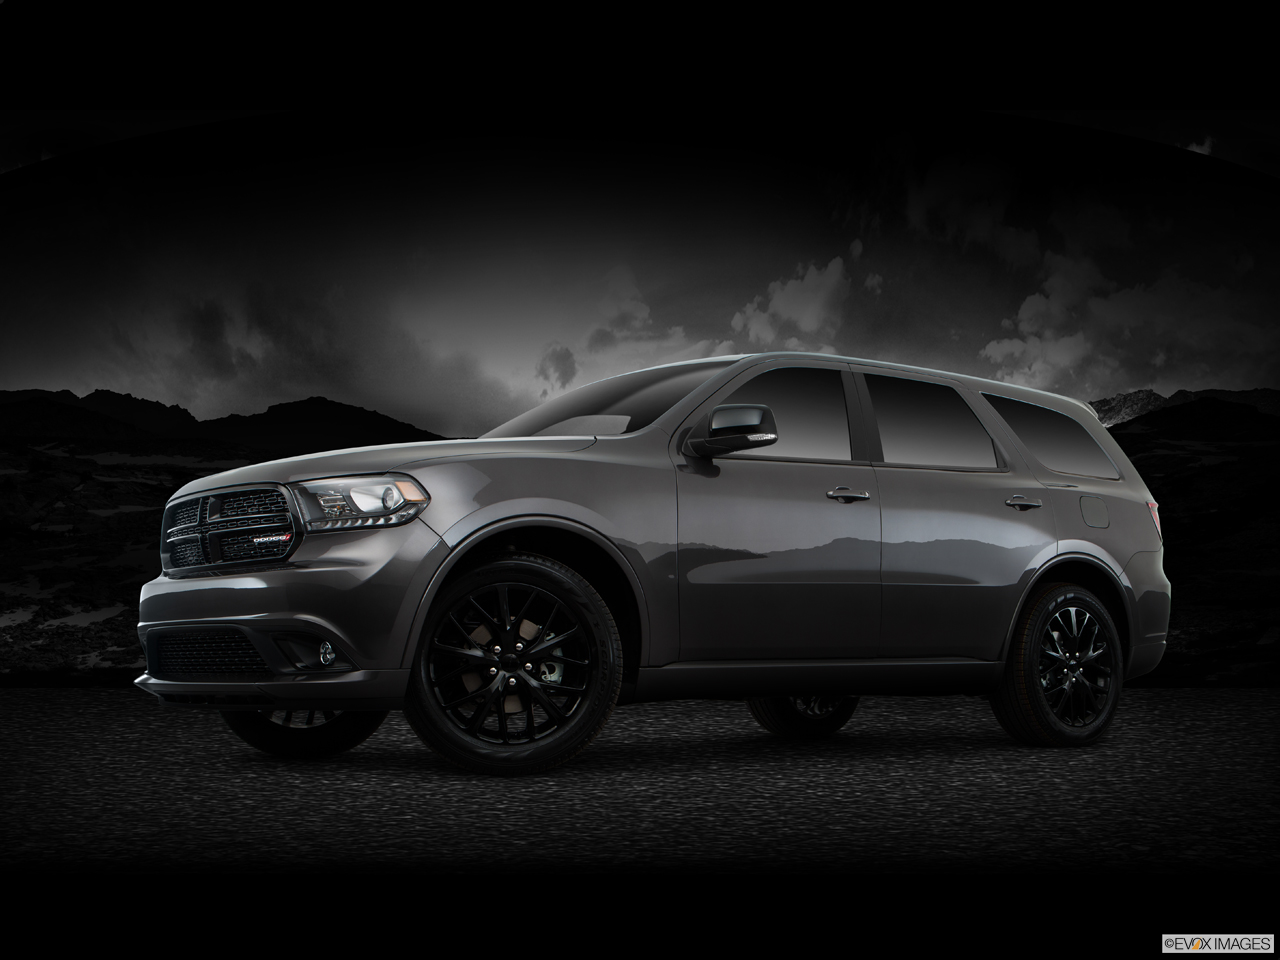 Moss Bros Jeep >> 2016 Dodge Durango dealer in Riverside | Moss Bros. Chrysler Dodge Jeep RAM Riverside